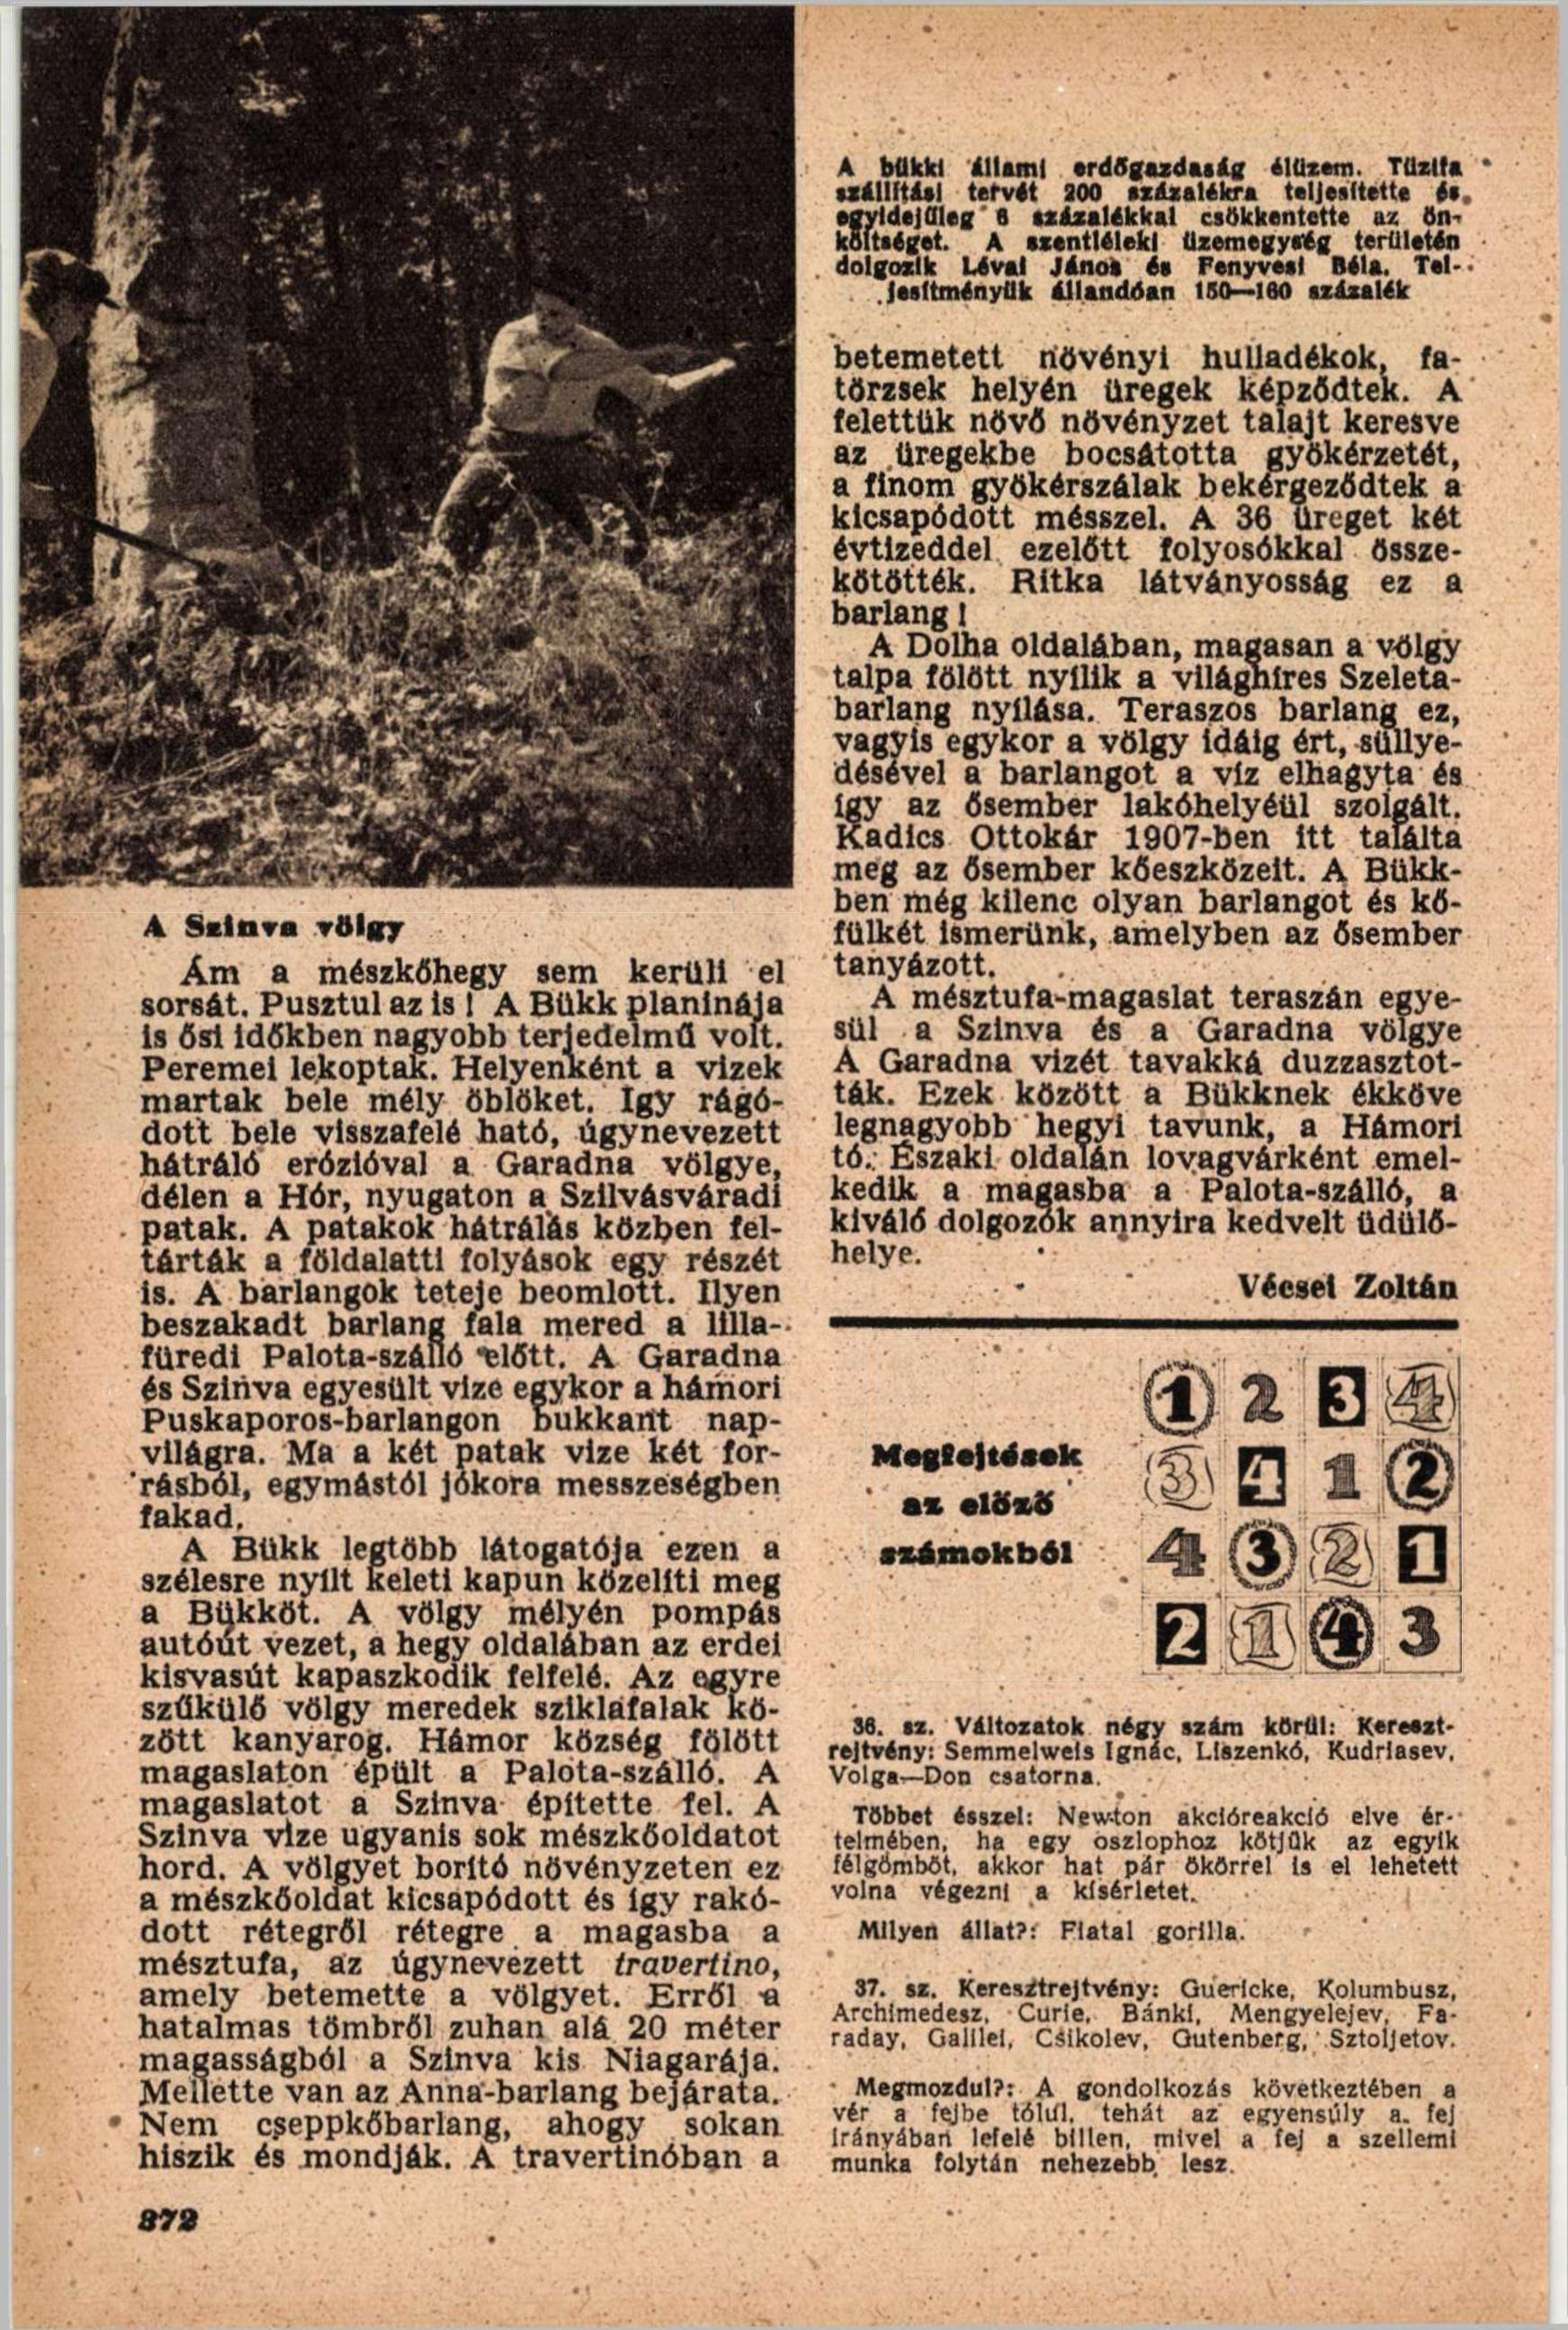 eletestudomany_1952_2_pages369-374-page-006.jpg